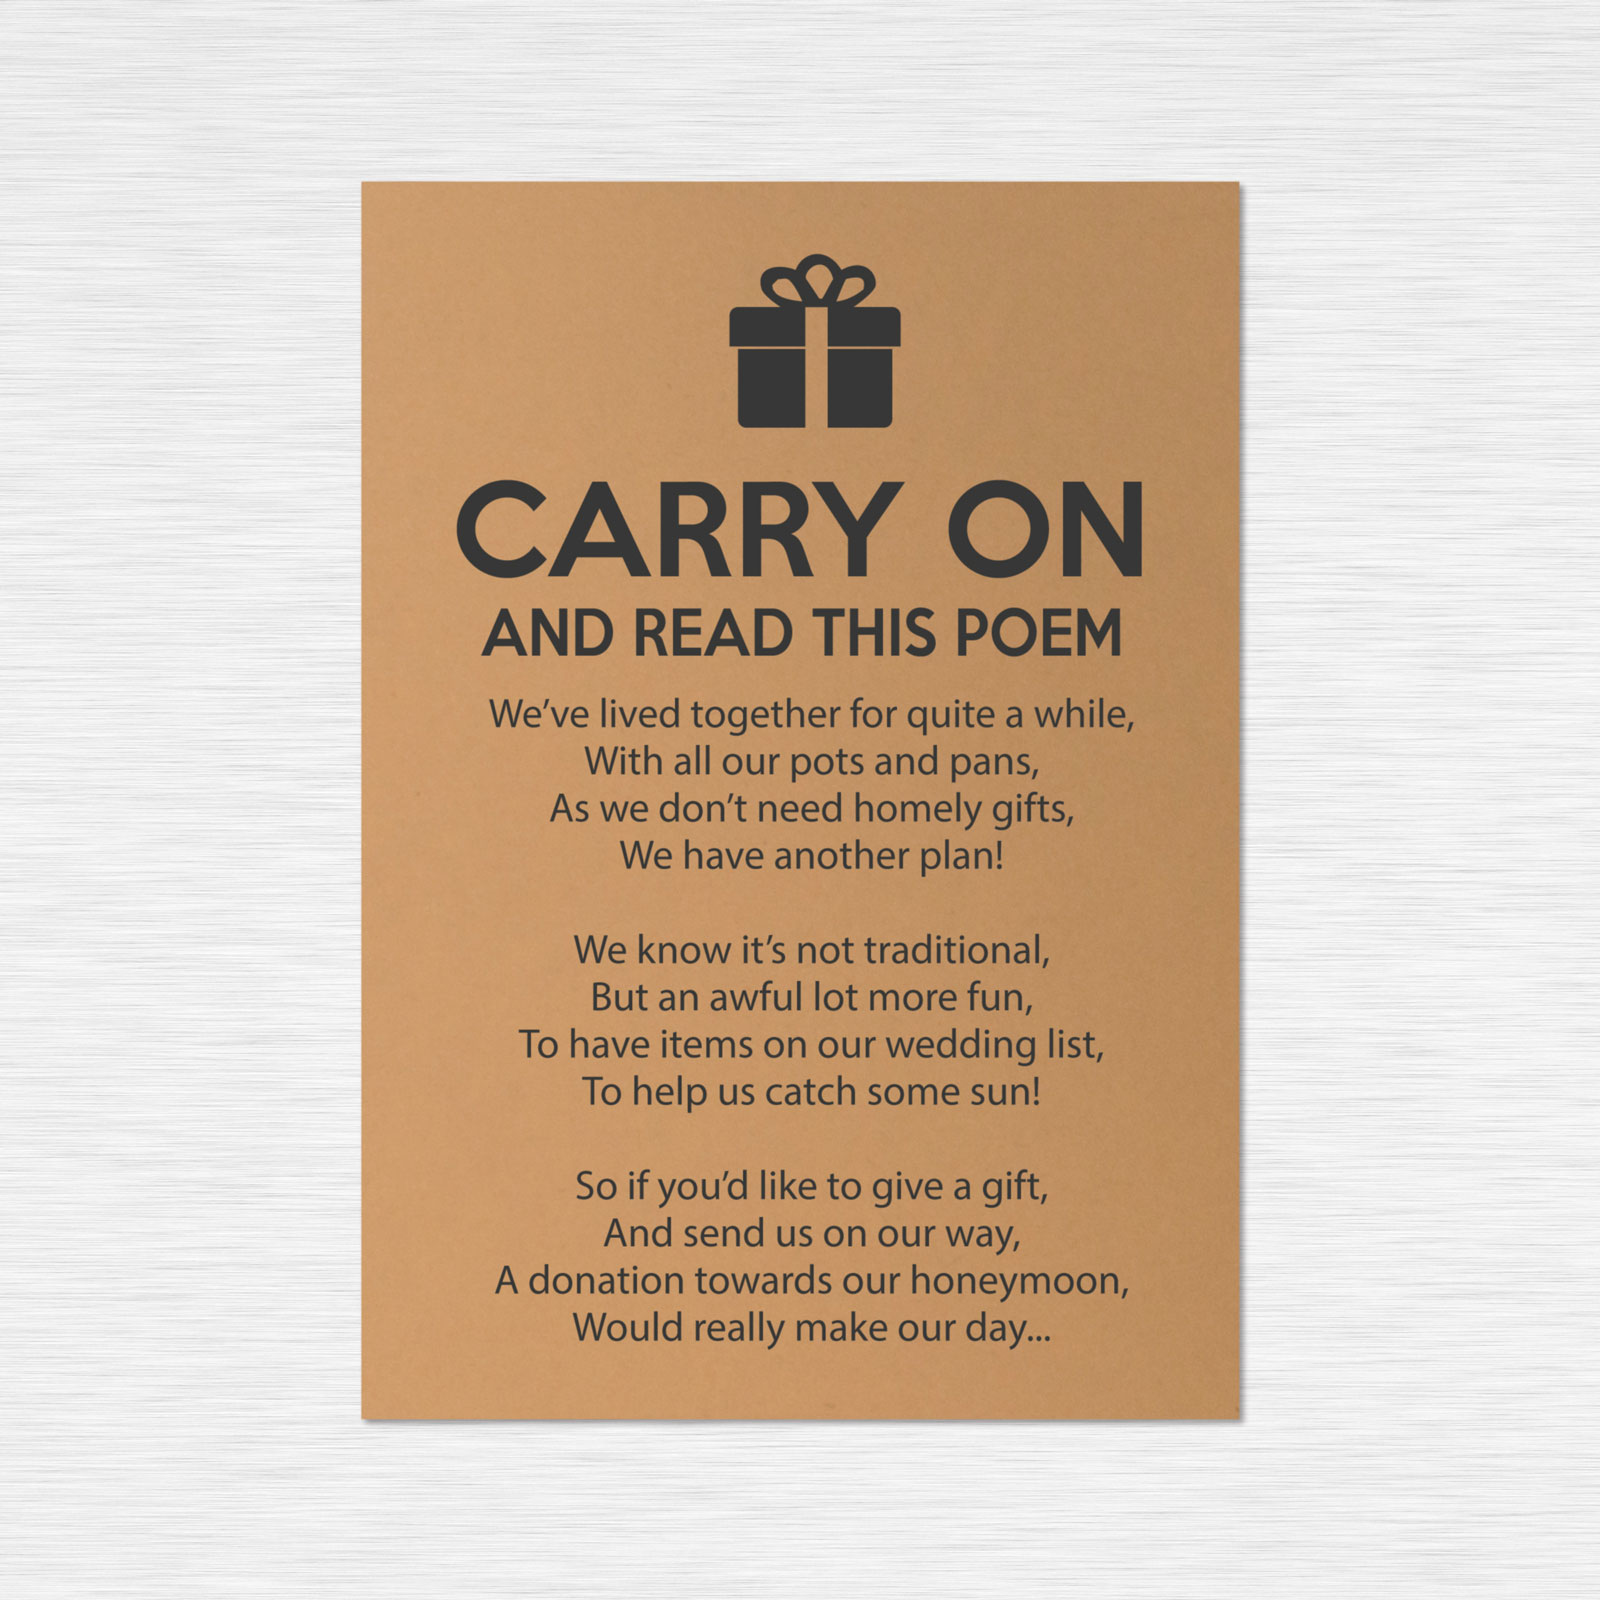 Poem cards from £0.41 ea